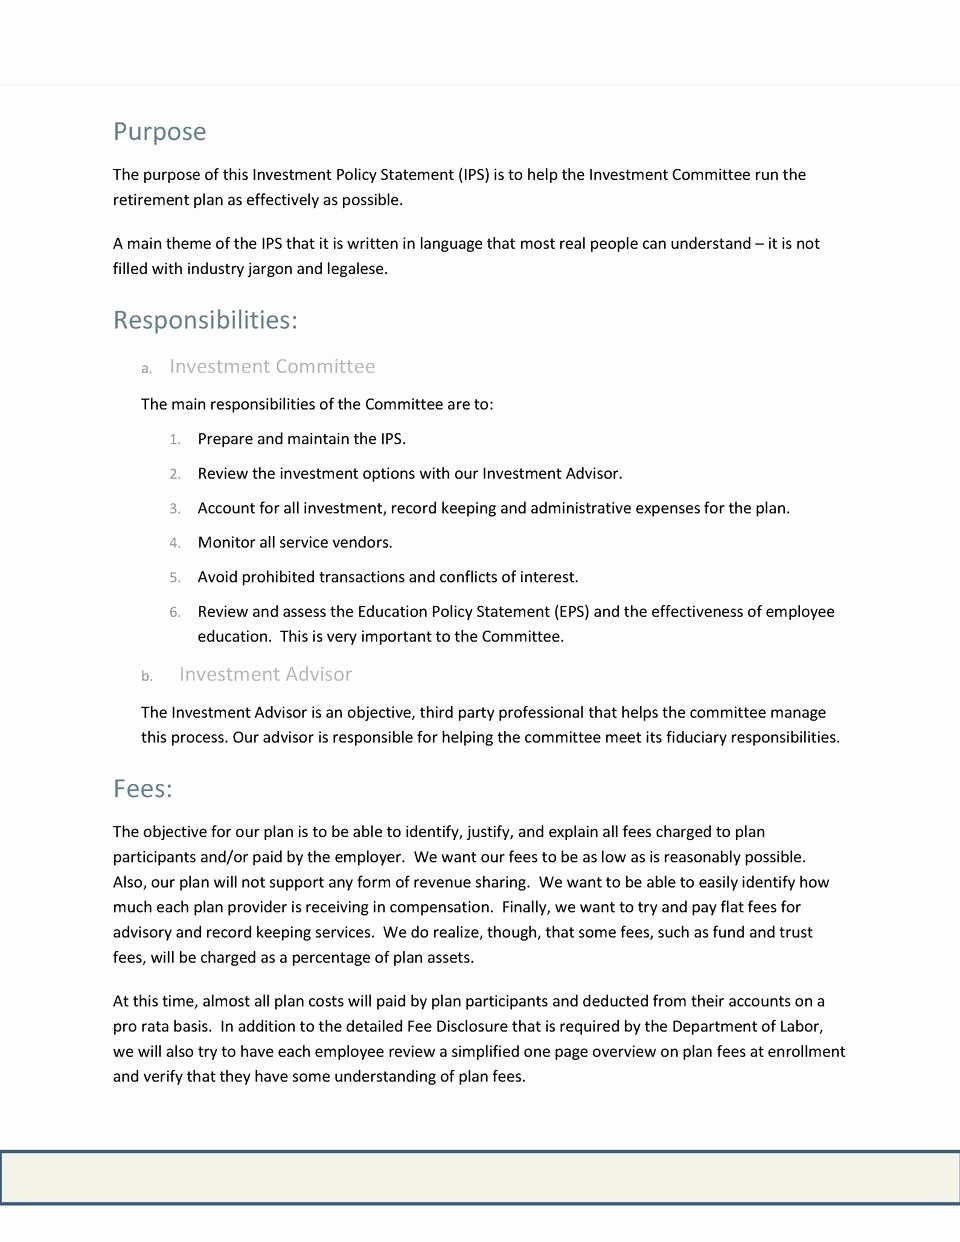 Investment Policy Statement Template Inspirational Investment Policy Statement Template